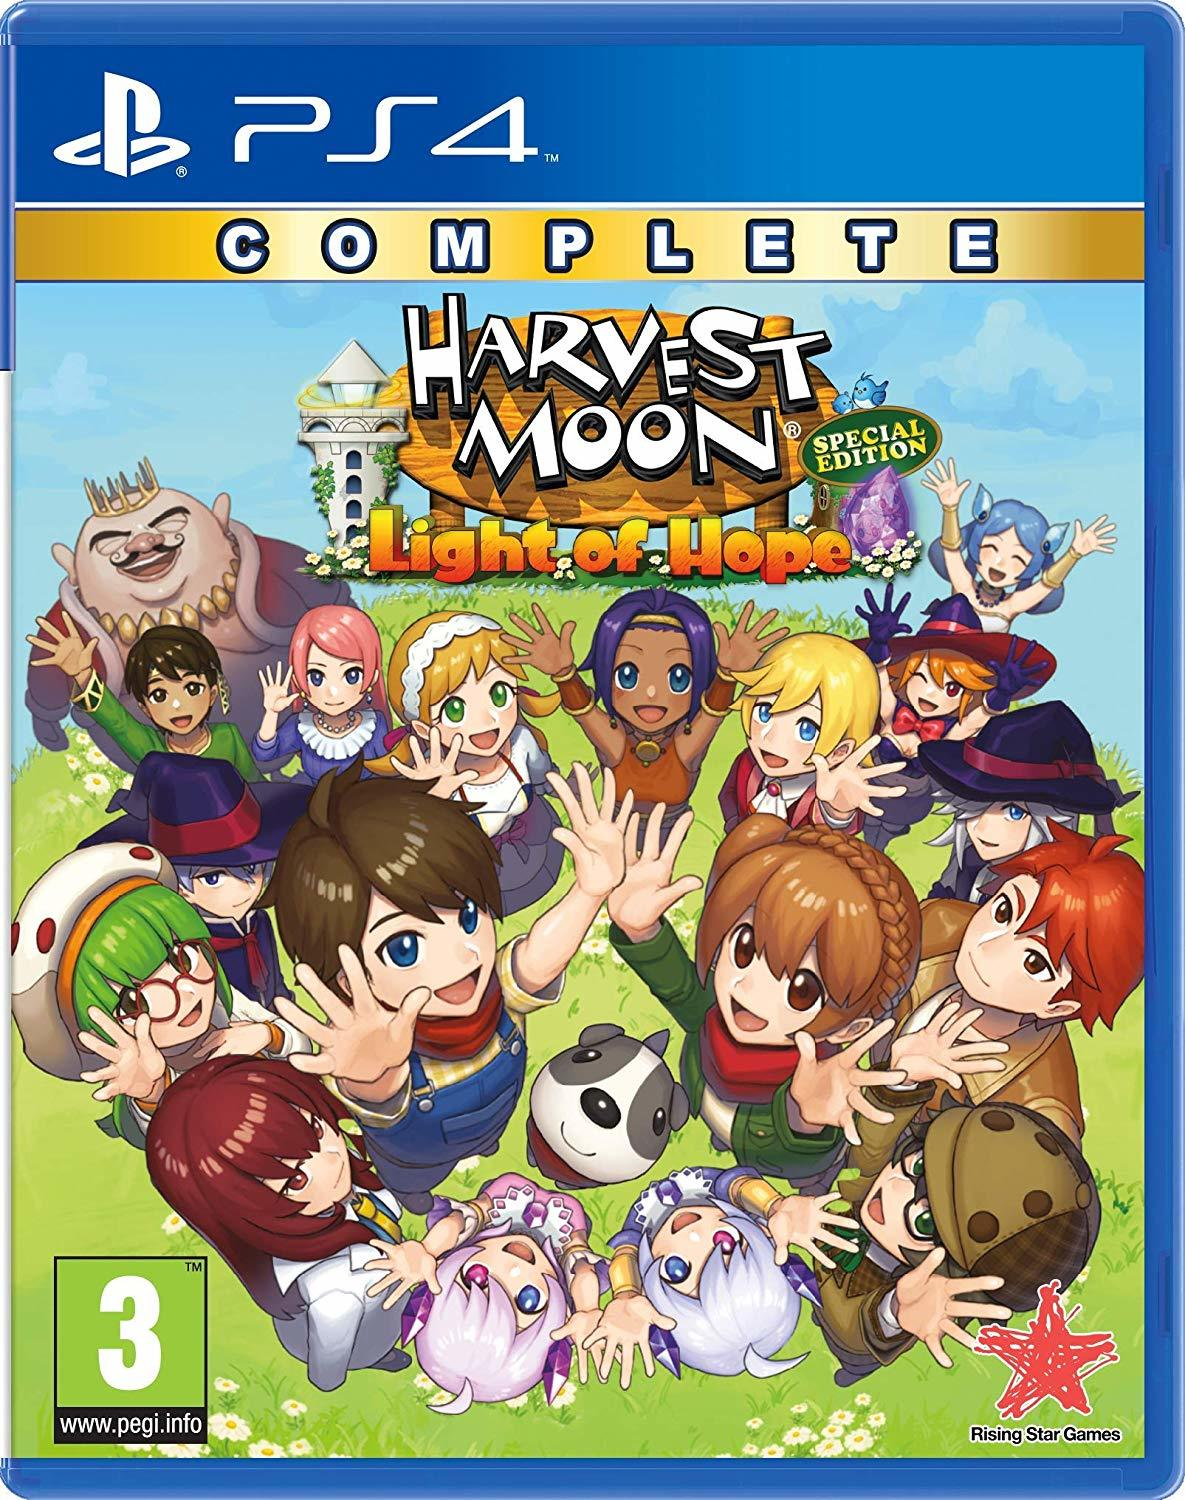 Harvest Moon: Light of Hope Complete Special Edition - PS4